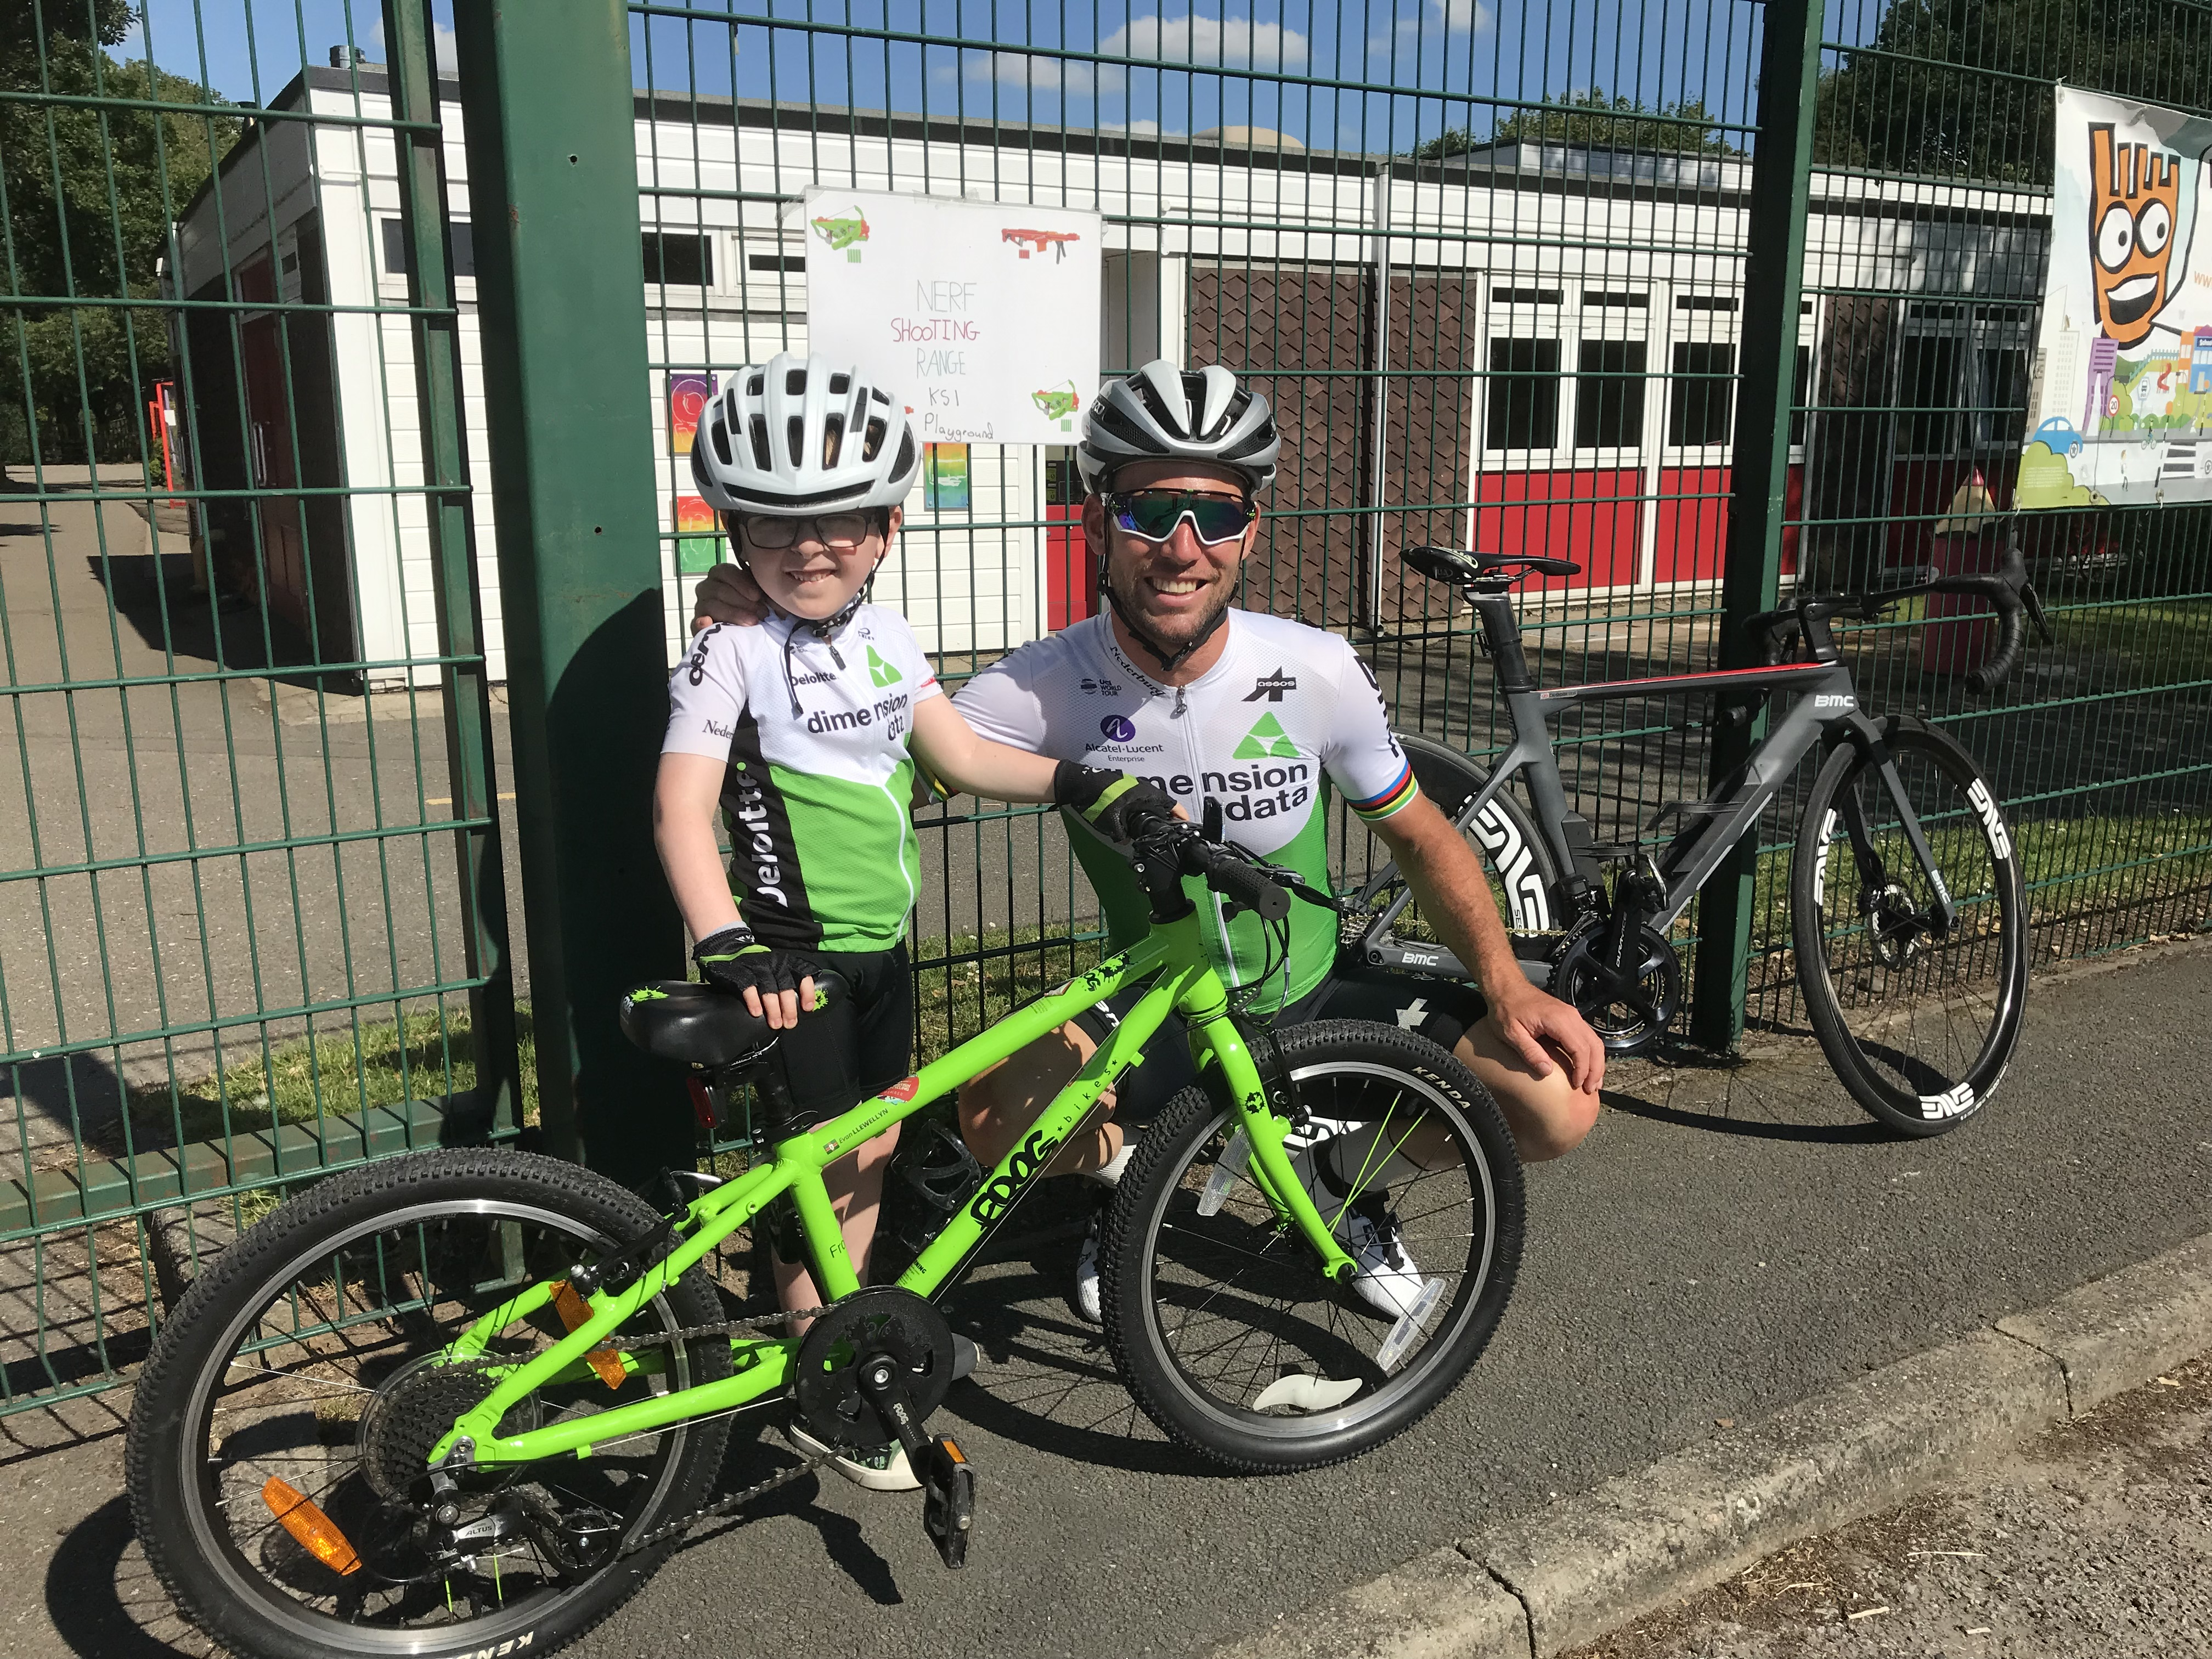 Mark Cavendish poses for a photo with cycling fan Evan Llewellyn